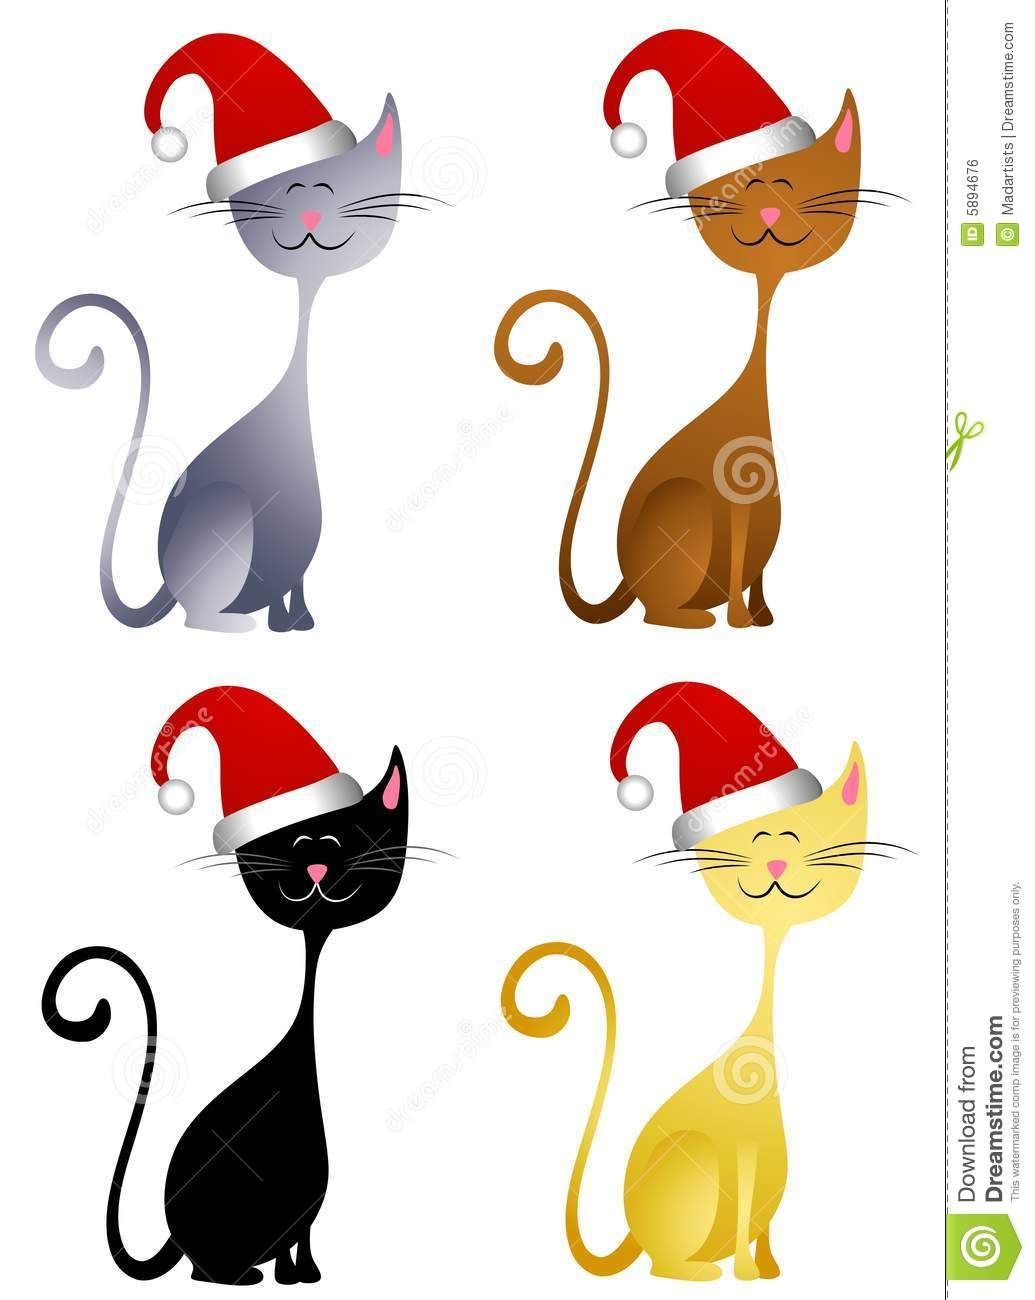 1035x1300 Merry Christmas Cat Clip Art Images On Page 0 Yanhe Clip Art